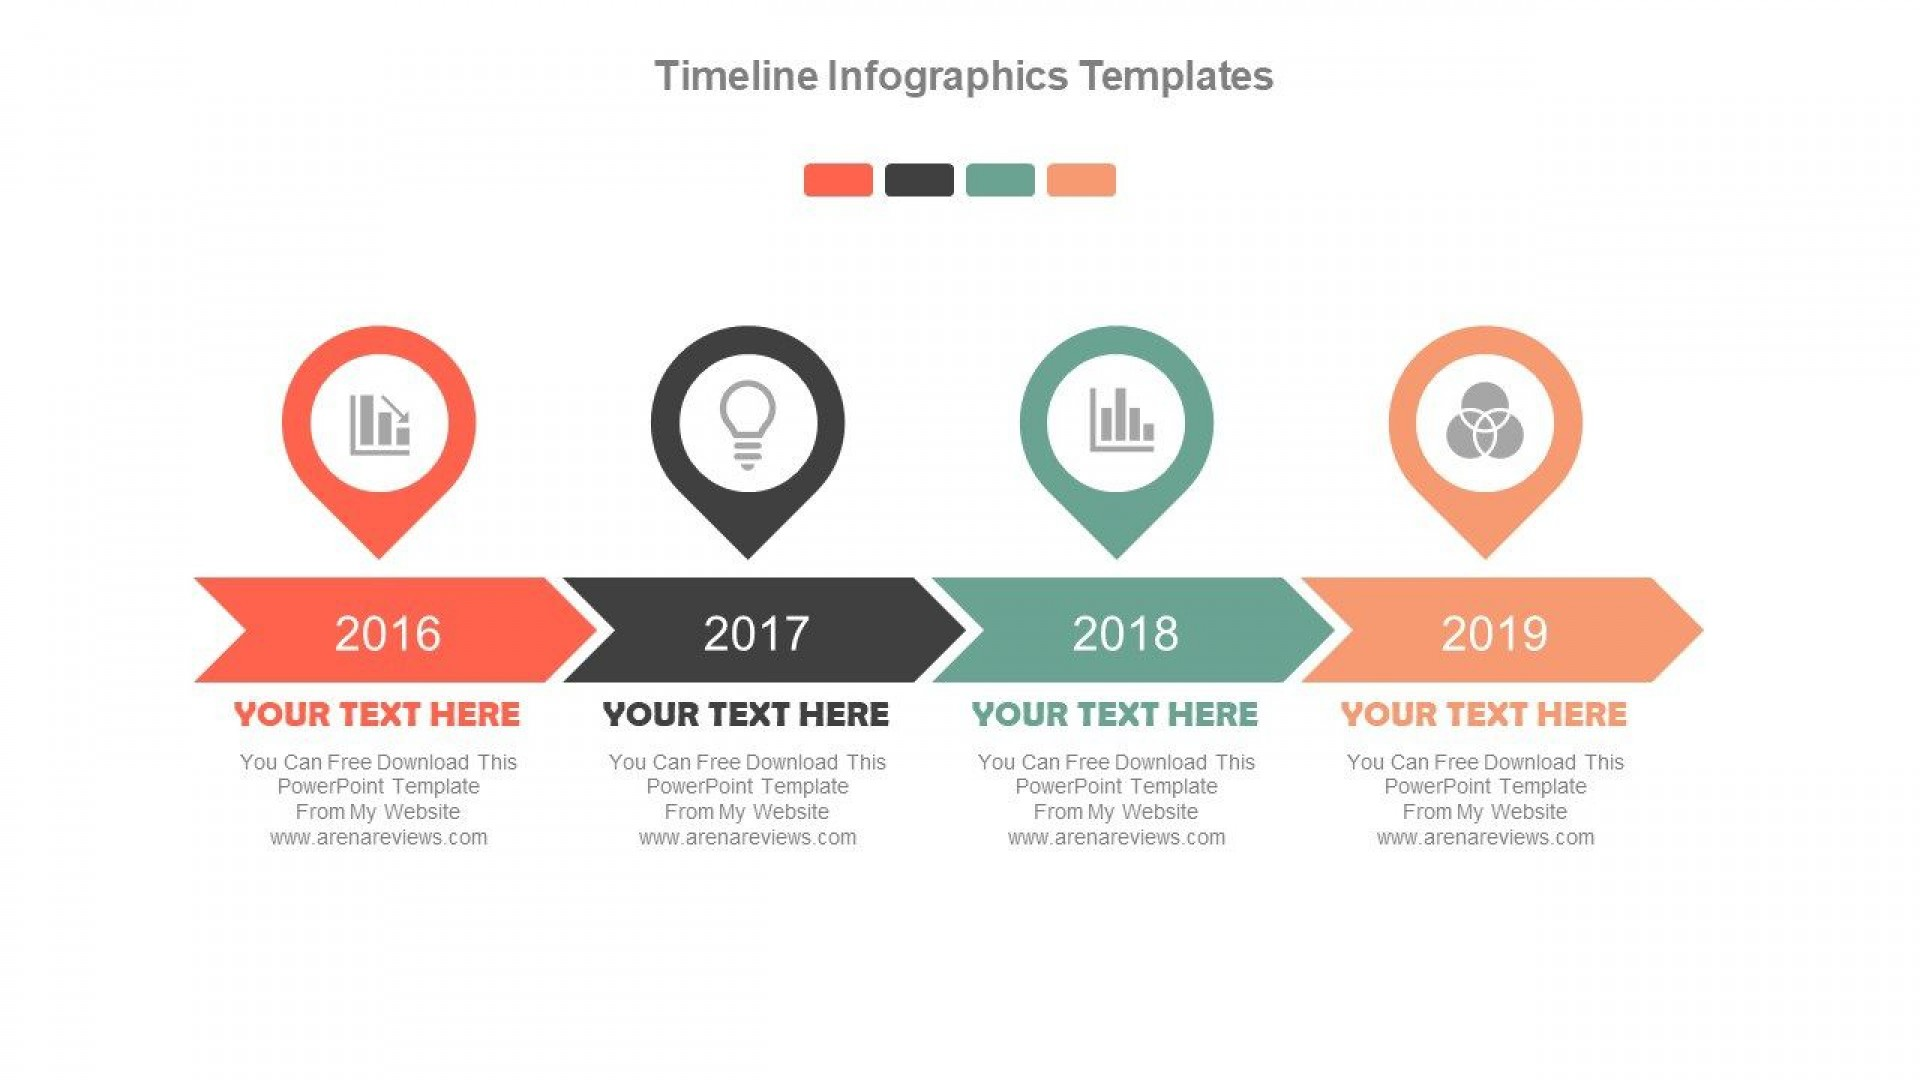 003 Unbelievable Timeline Template Ppt Free Download Concept  Infographic Powerpoint Project1920